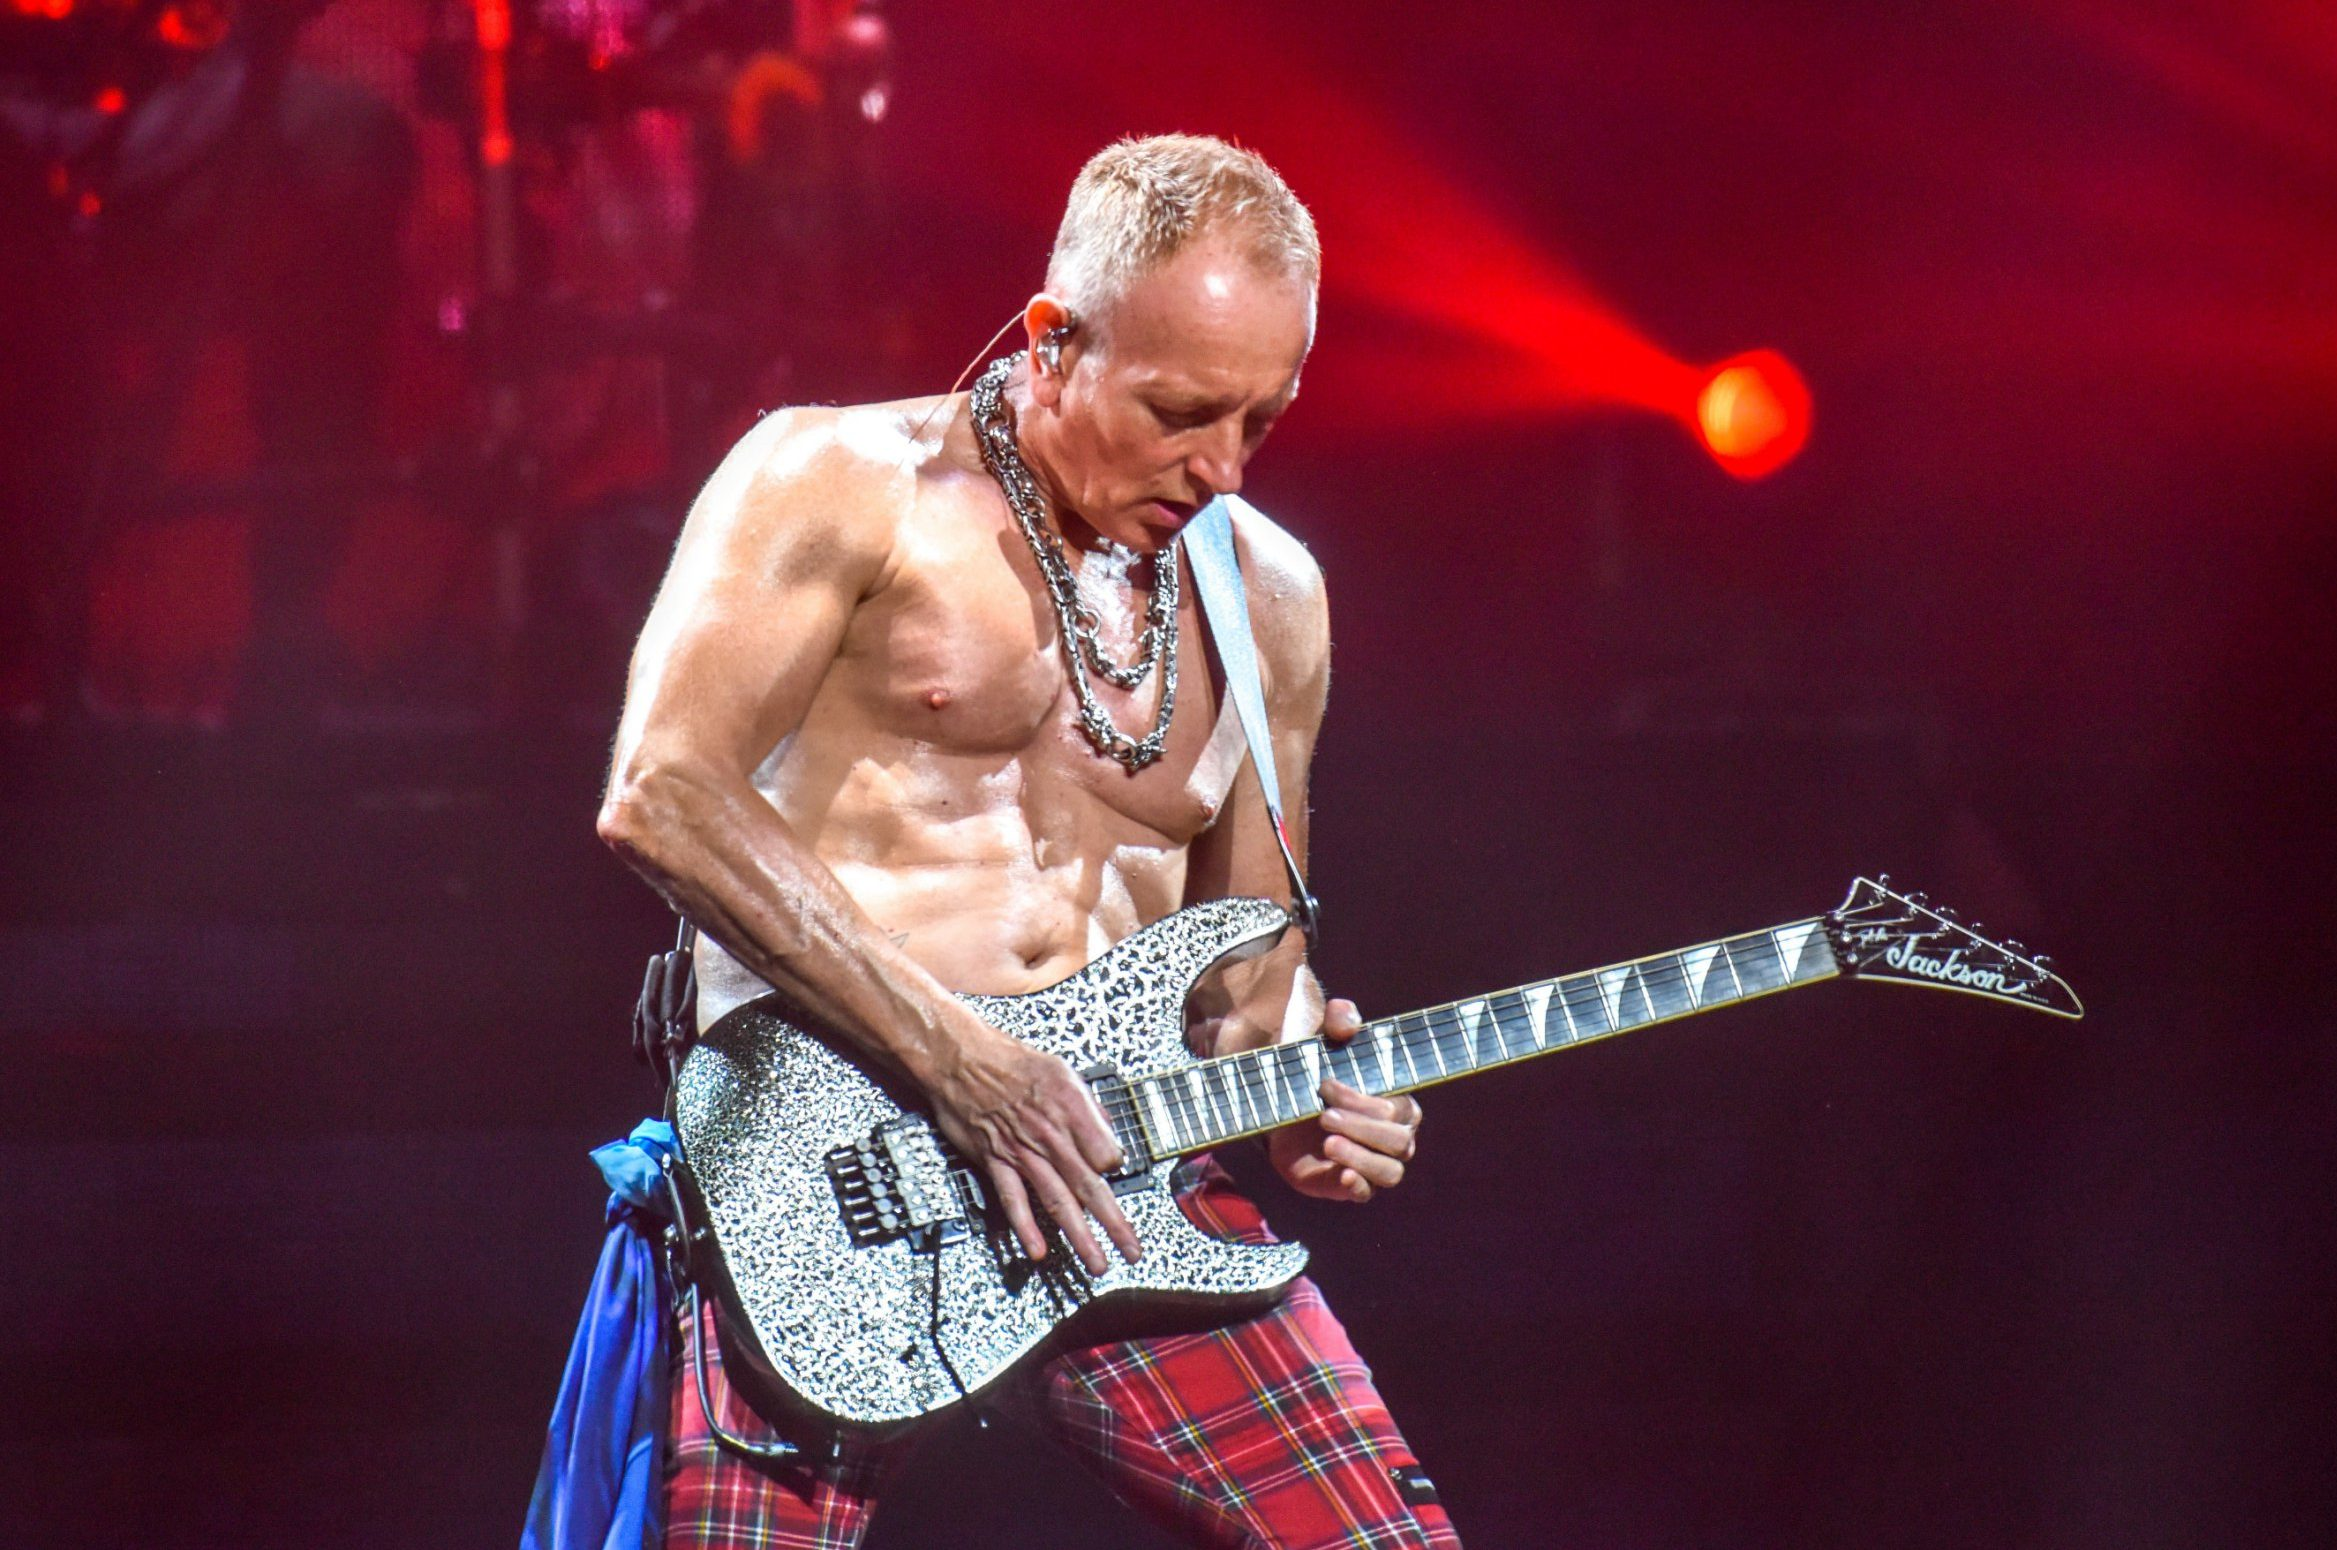 Mandatory Credit: Photo by Graham Harries/REX (10014547a) Def Leppard - Phil Collen Def Leppard in concert at Motorpoint Arena, Cardiff, Wales - 04 Dec 2018